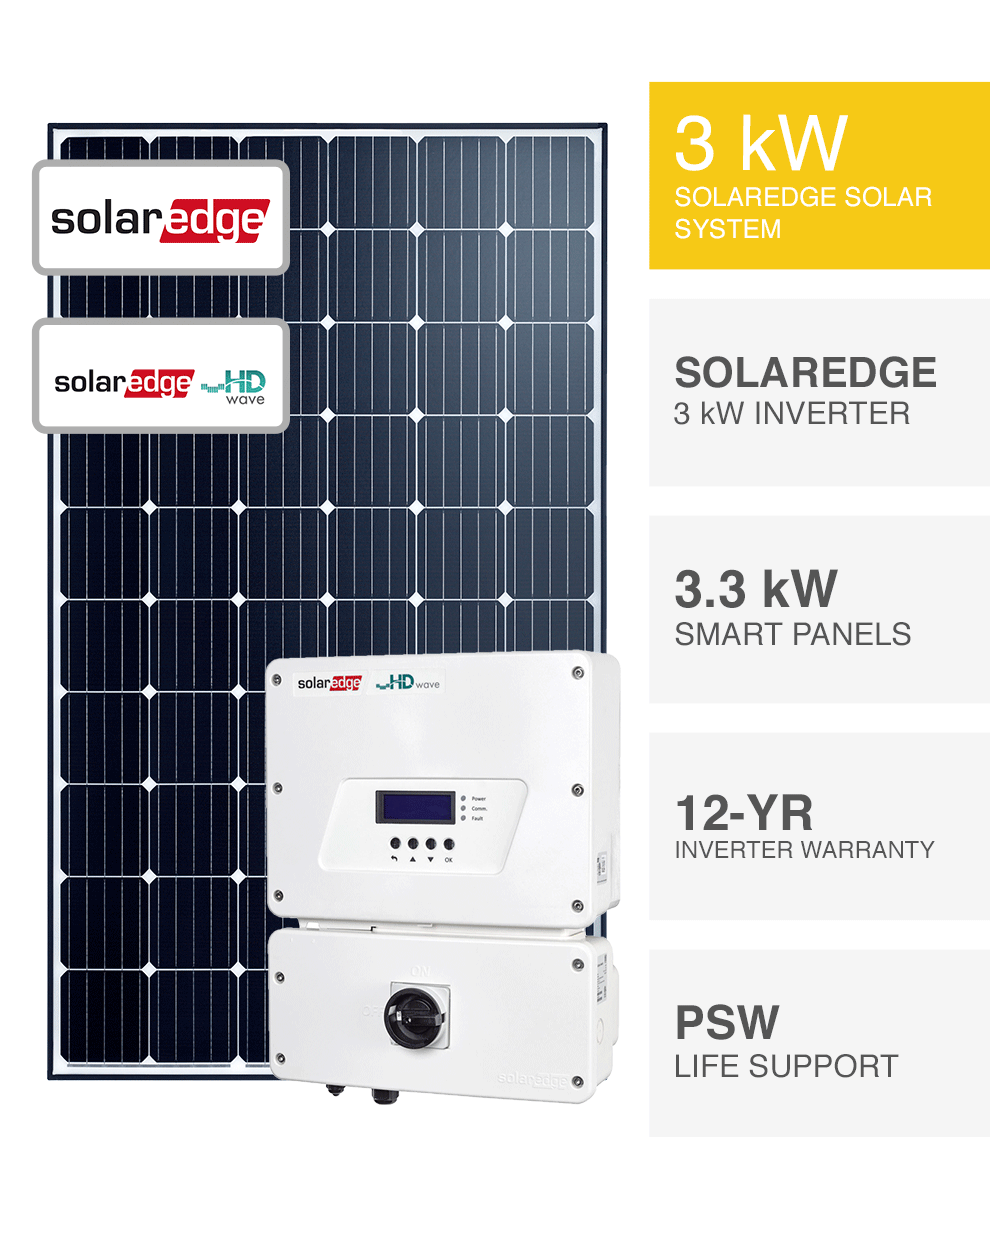 Solaredge 3kw Solar System Save More Installed Prices Perth Wa